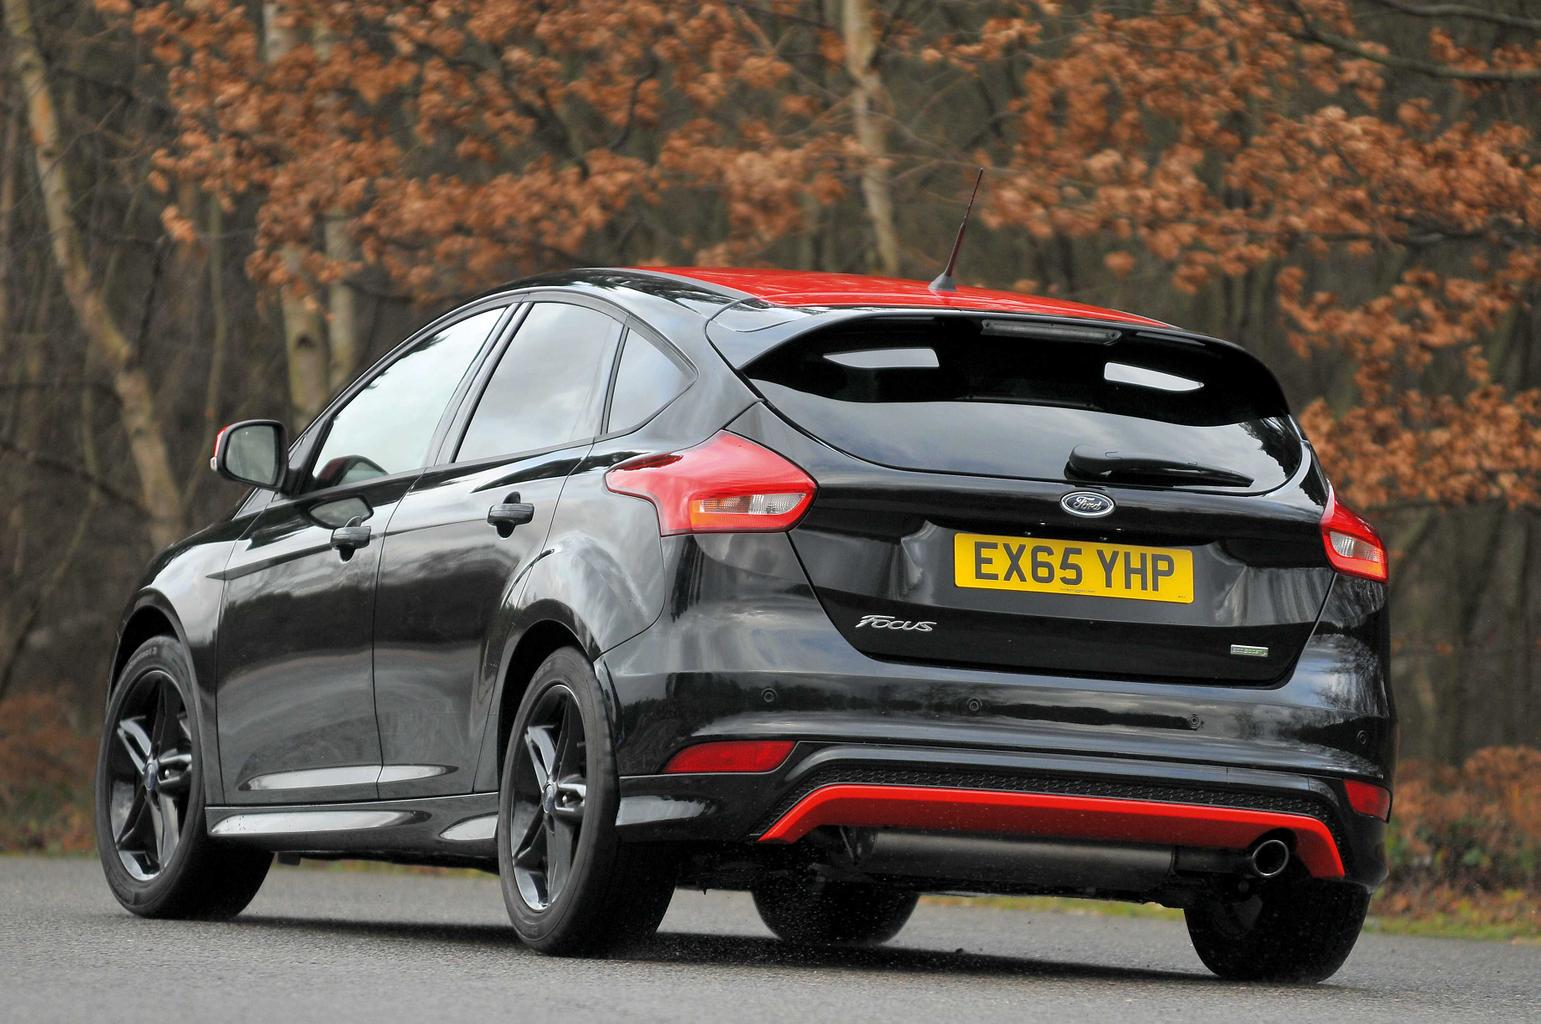 Ford Focus Black Edition vs Seat Leon FR